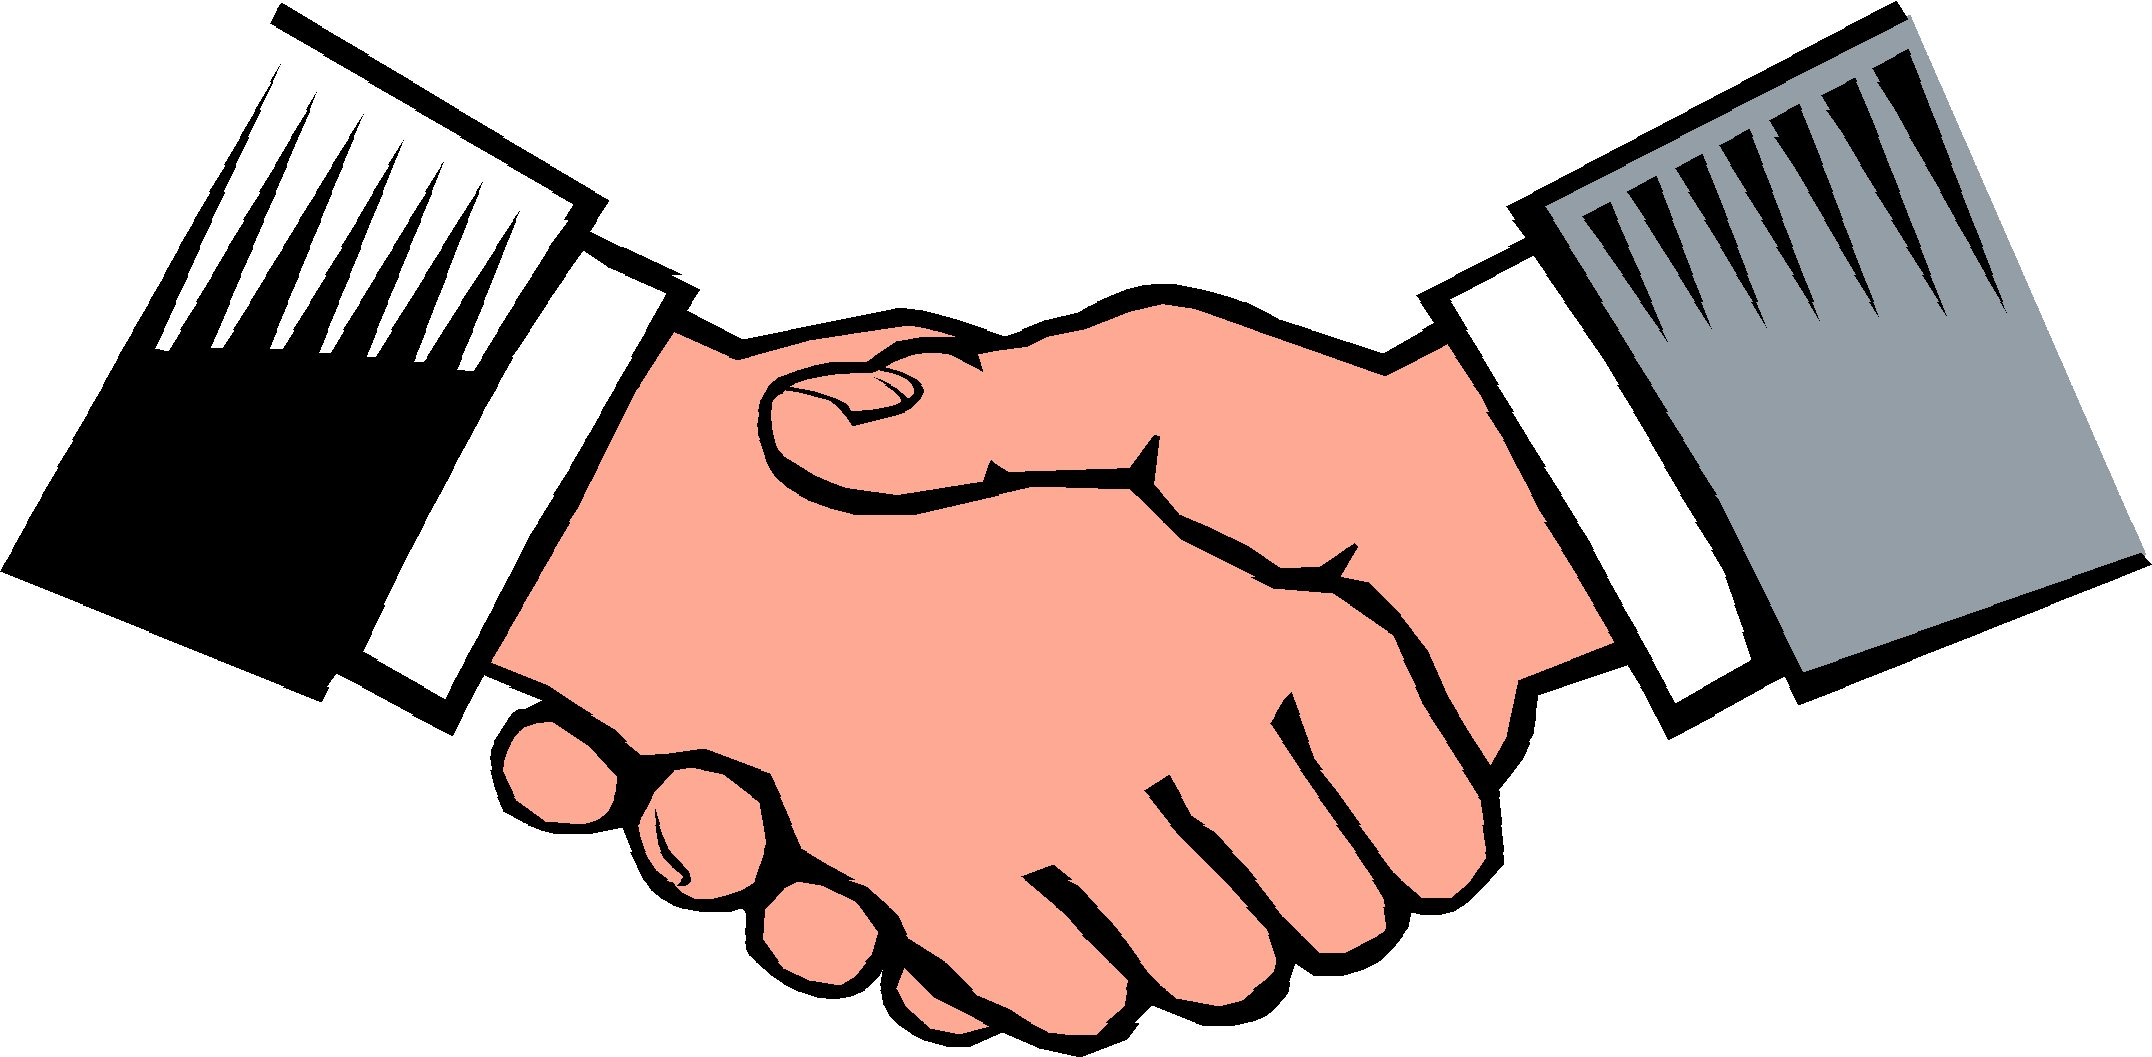 Hands shaking picture clipart best - Shaking Hands Pic Cliparts Co